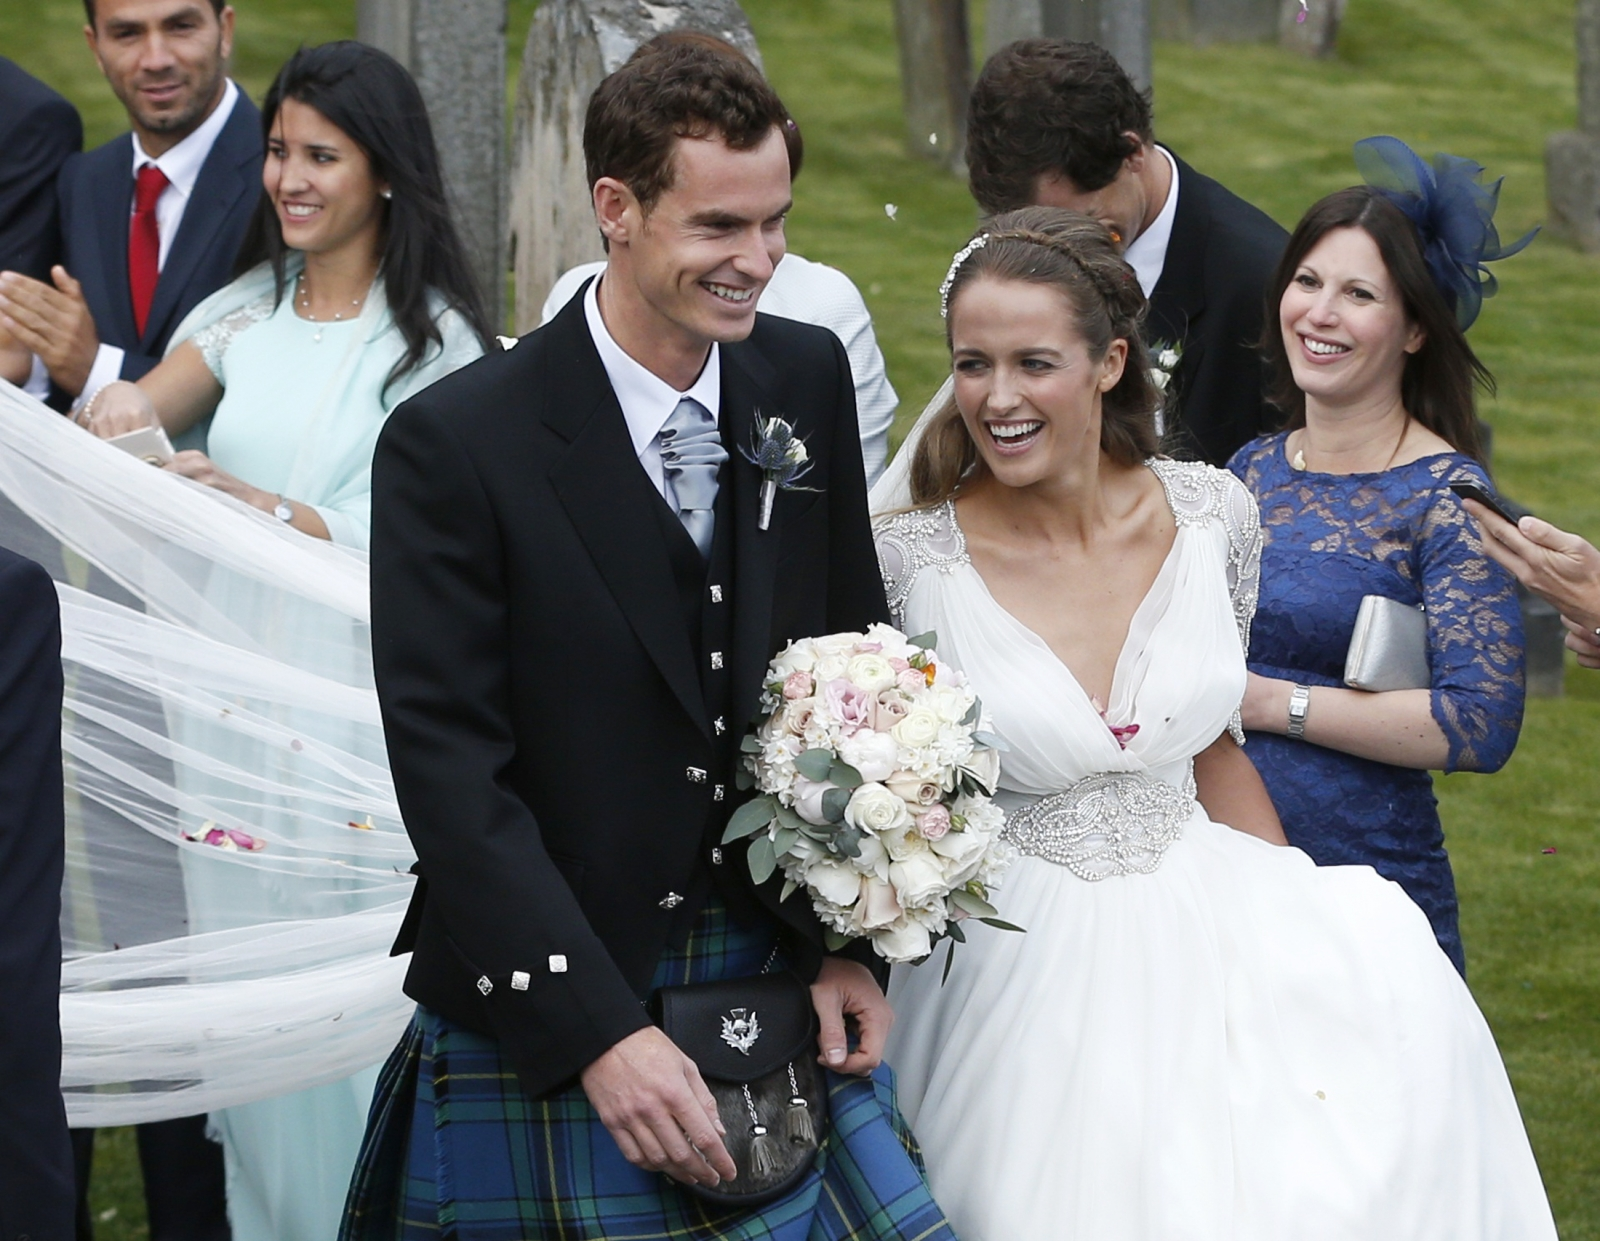 Andy Murray and Kim Sears get married